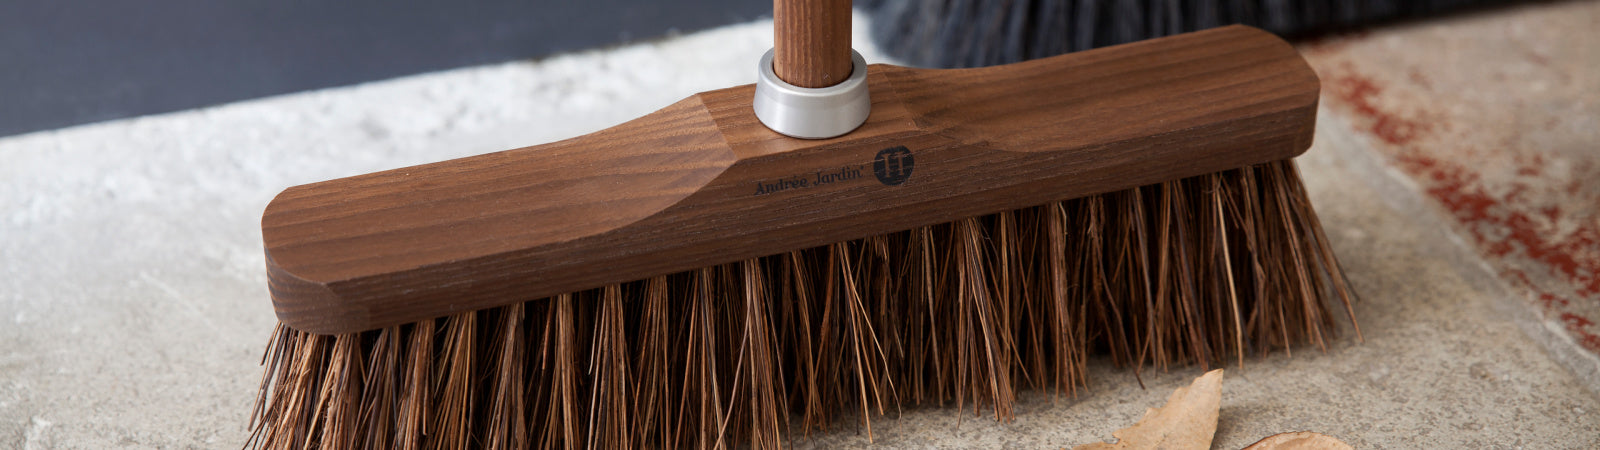 Andree Jardin - Fine Brushes, Brooms, and Home Goods available at Sportique.